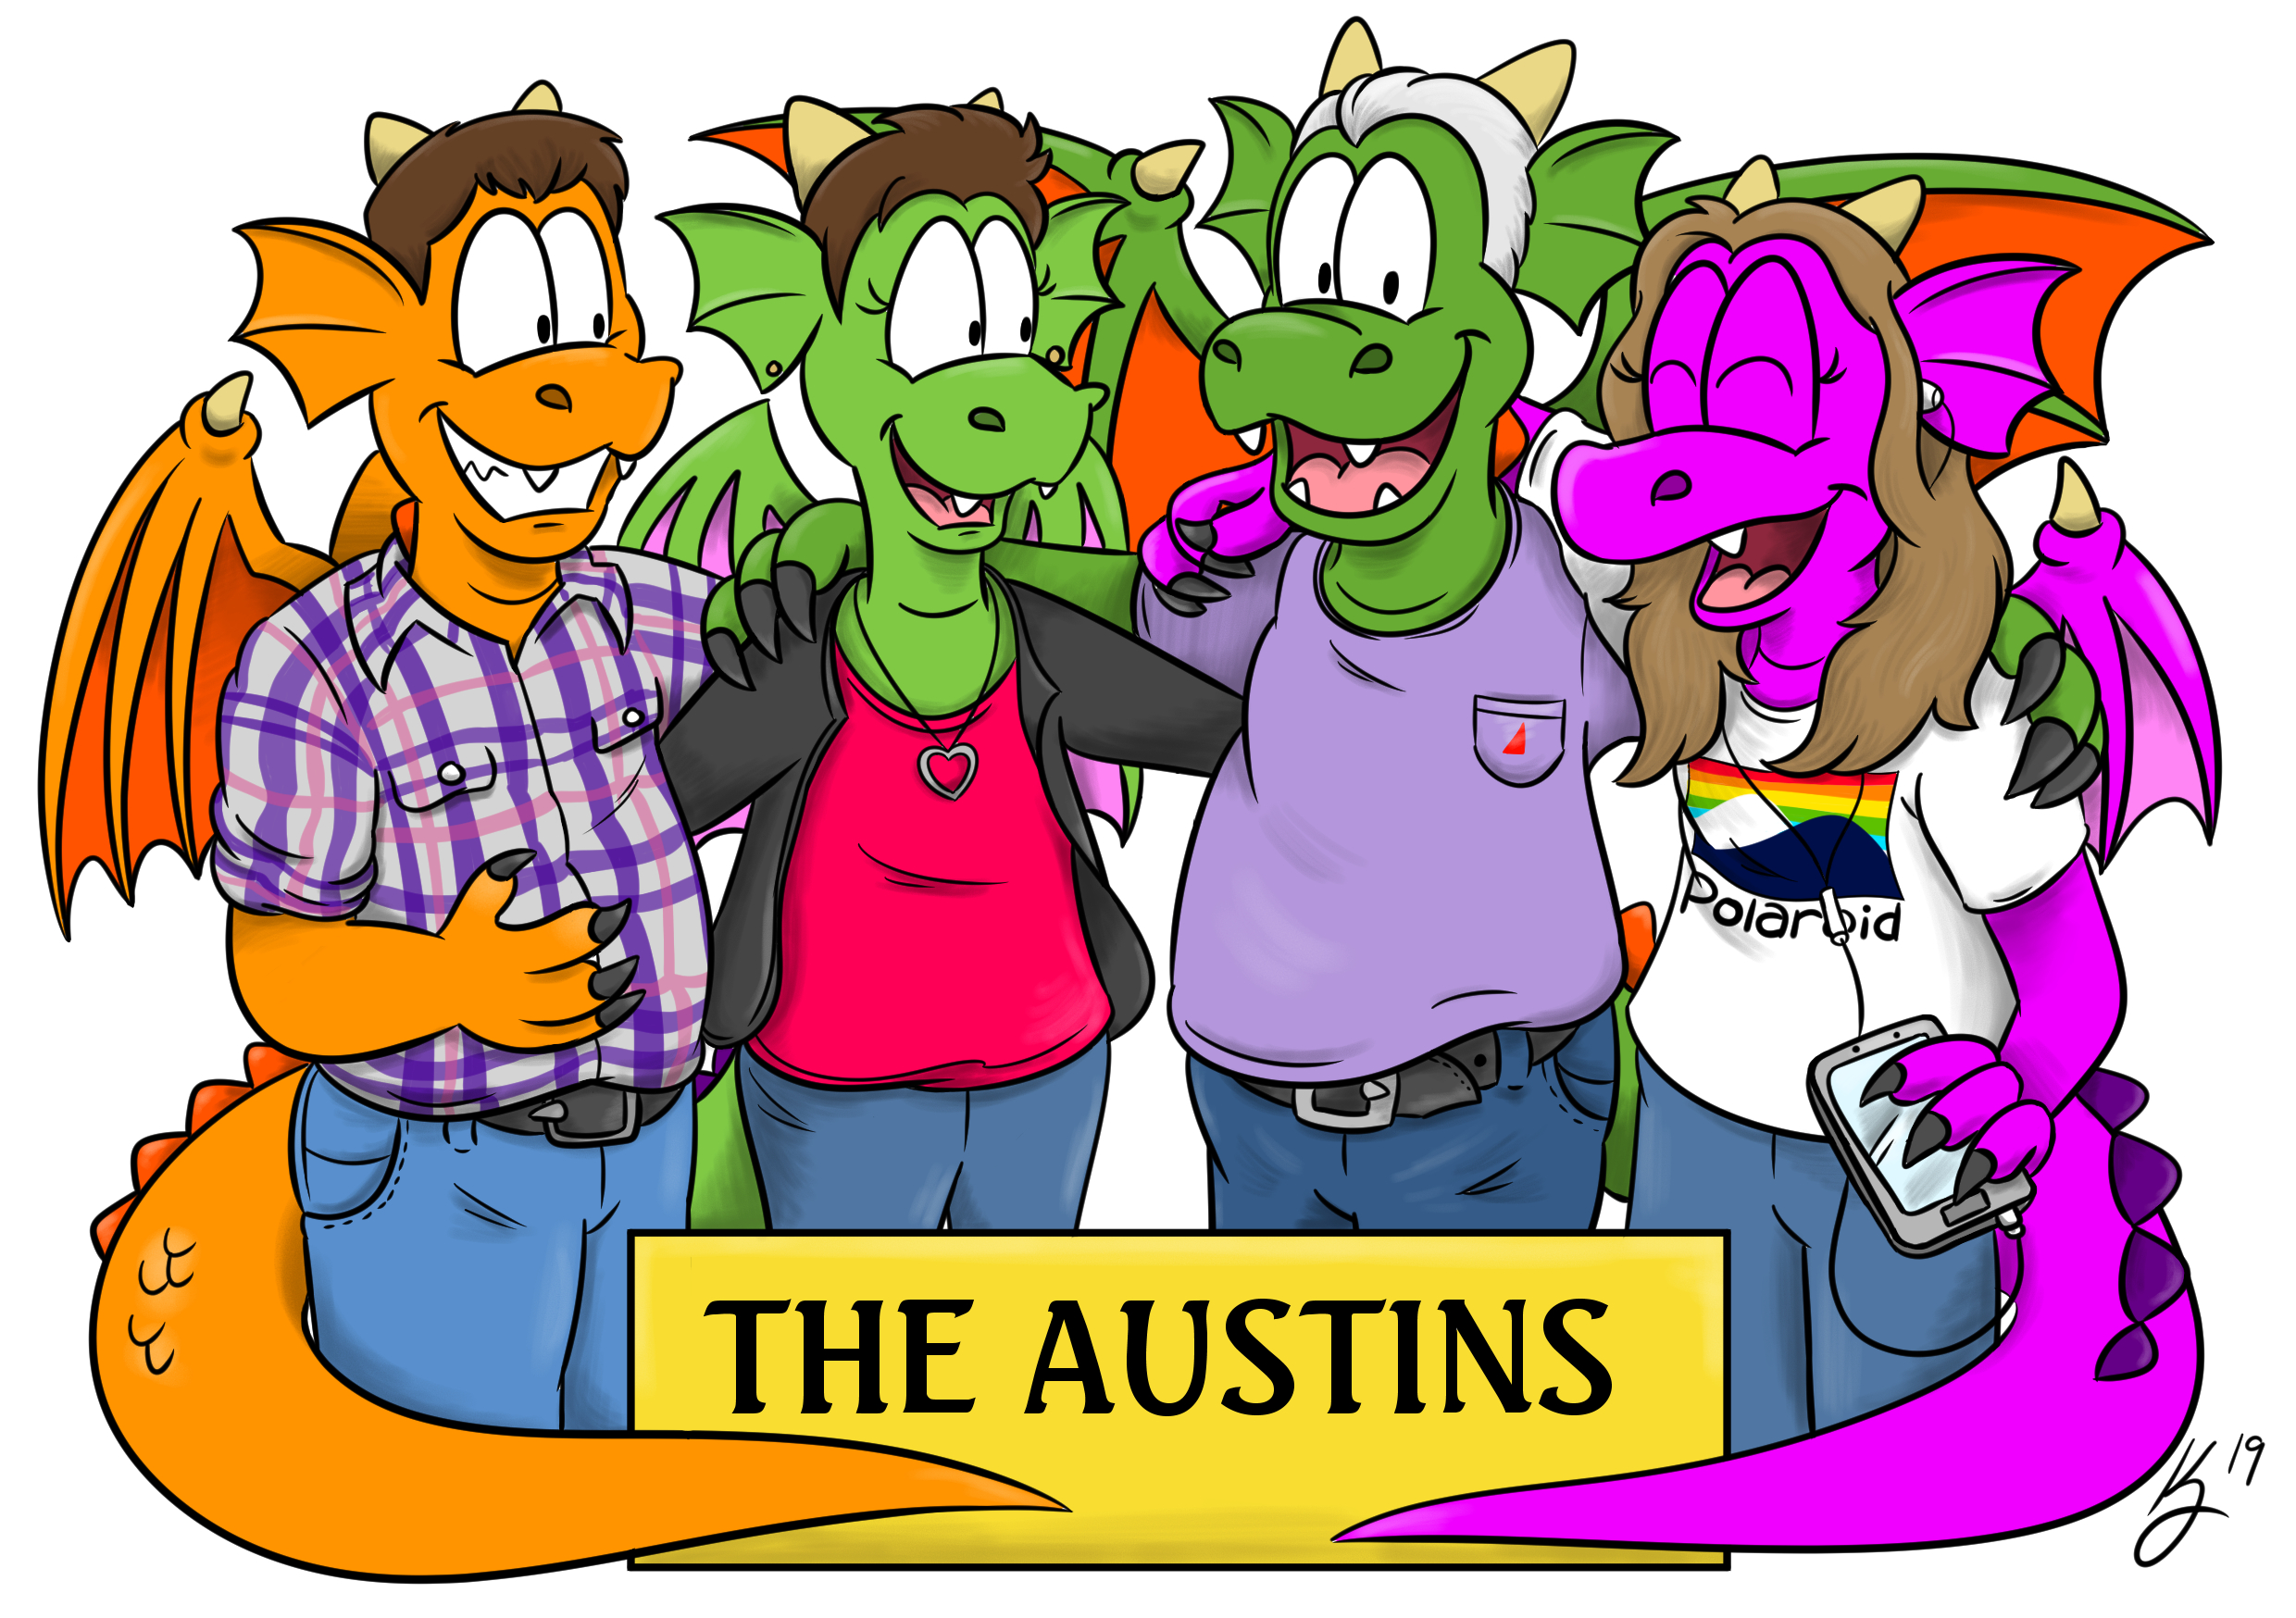 Dragon Caricature: The Austins